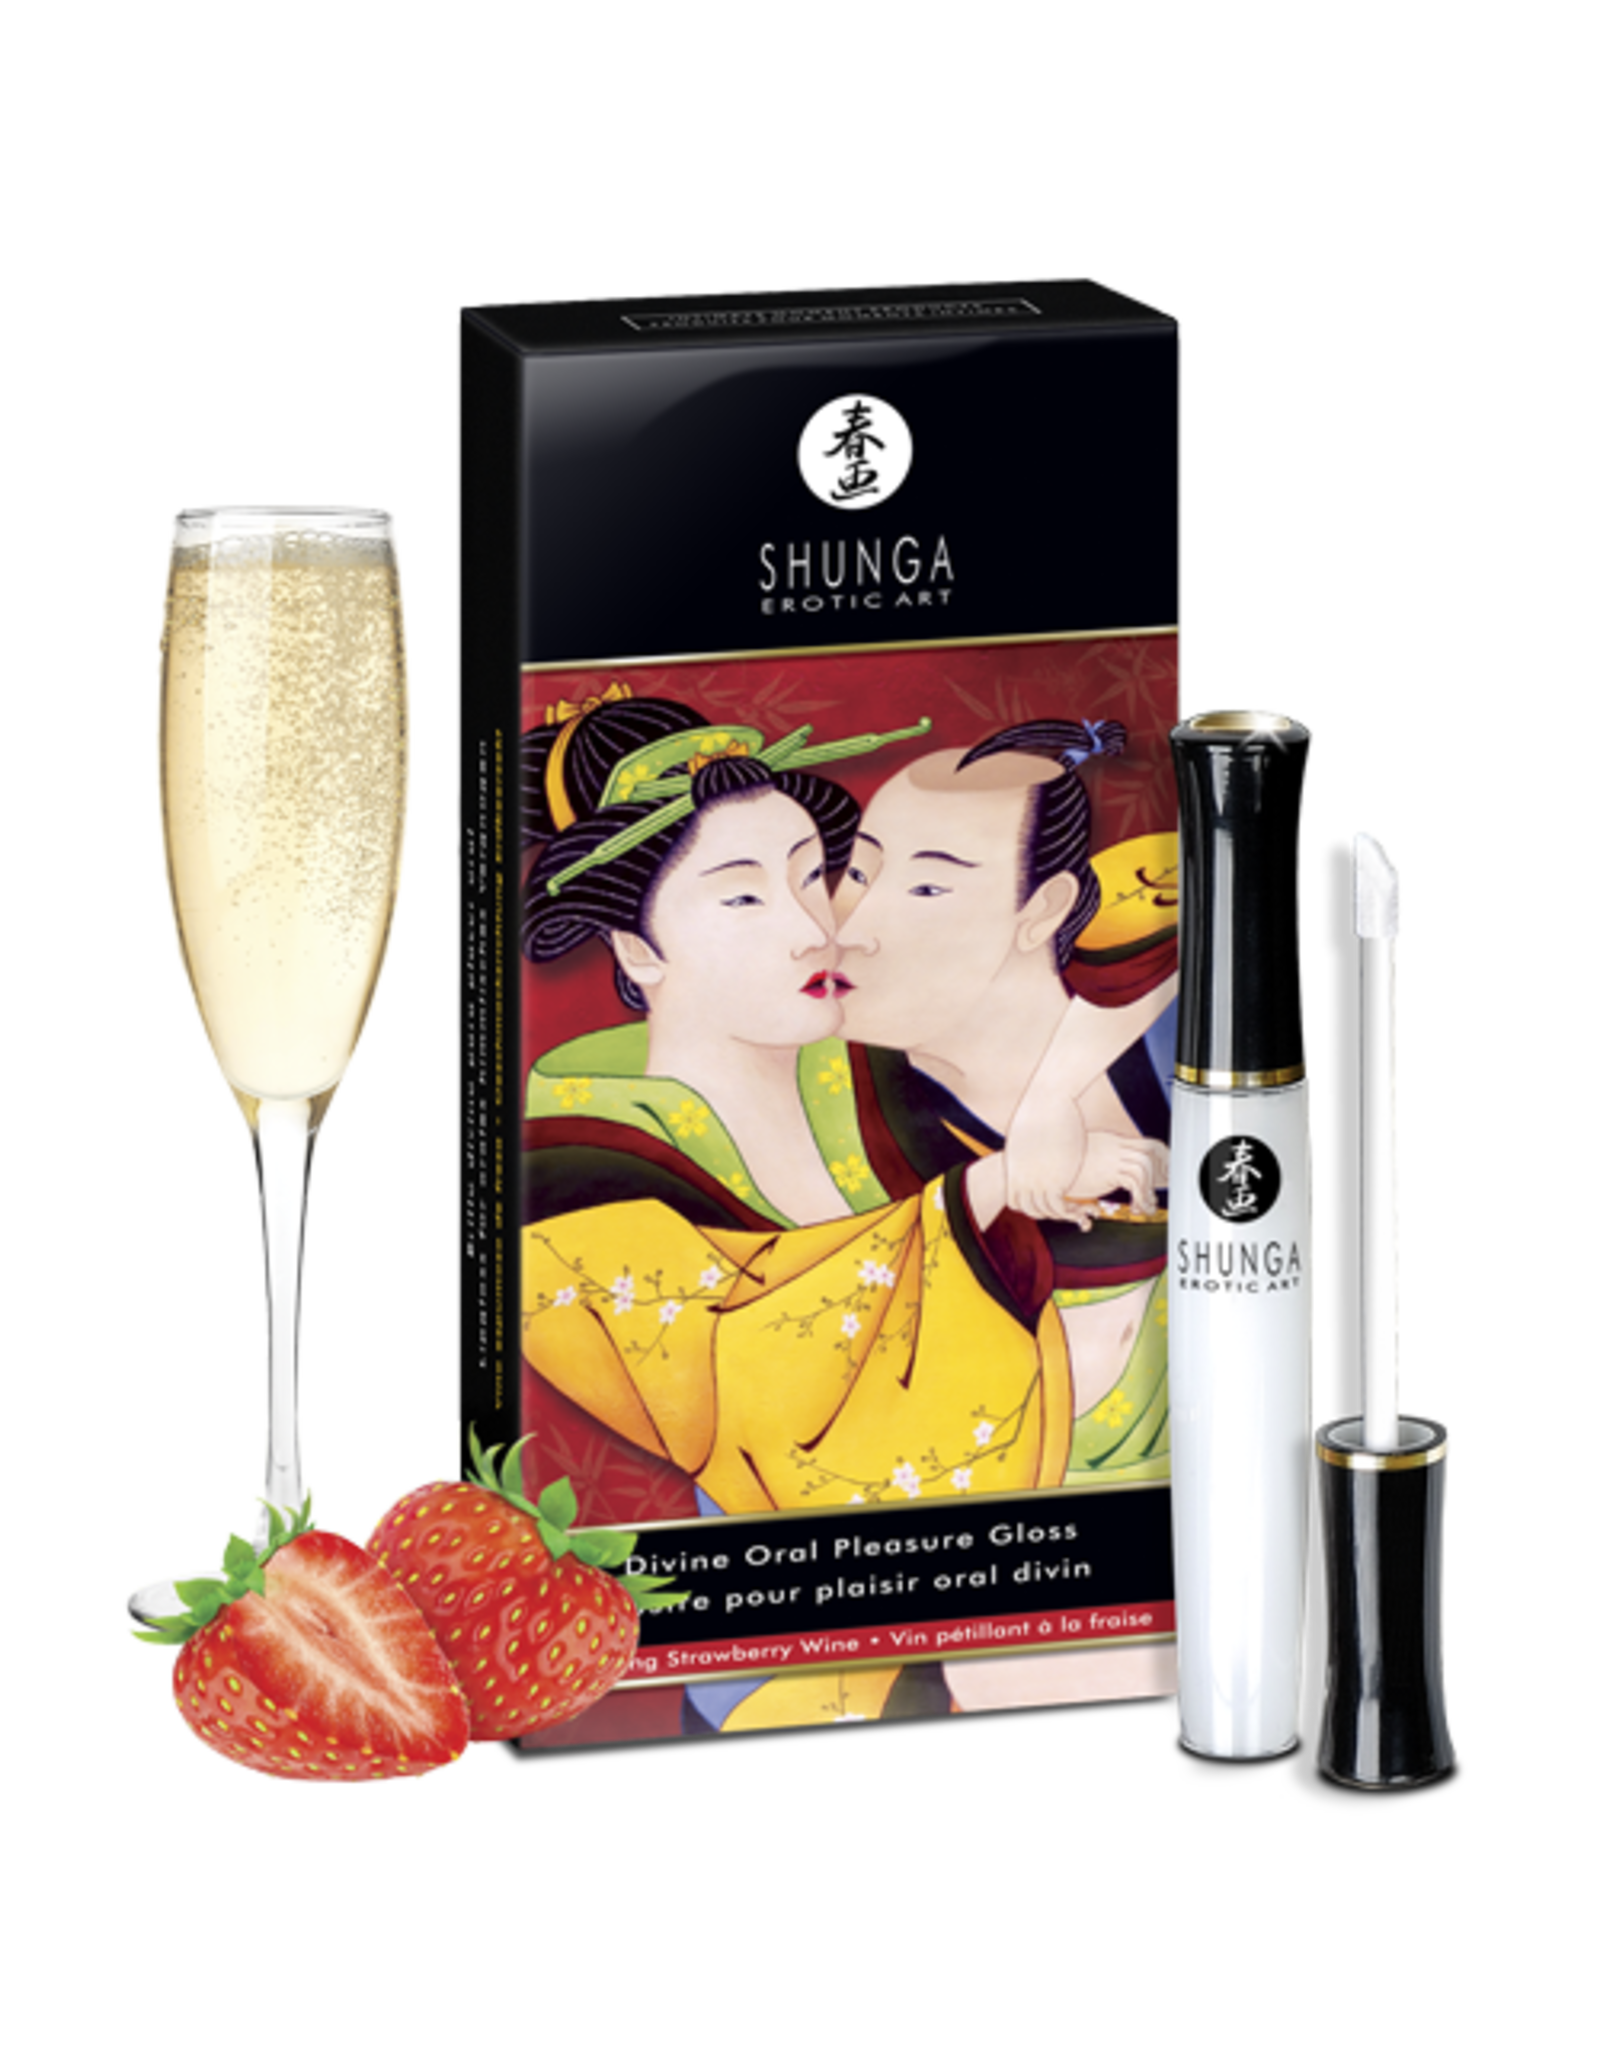 Shunga Shunga - Divine Oral Pleasure Gloss